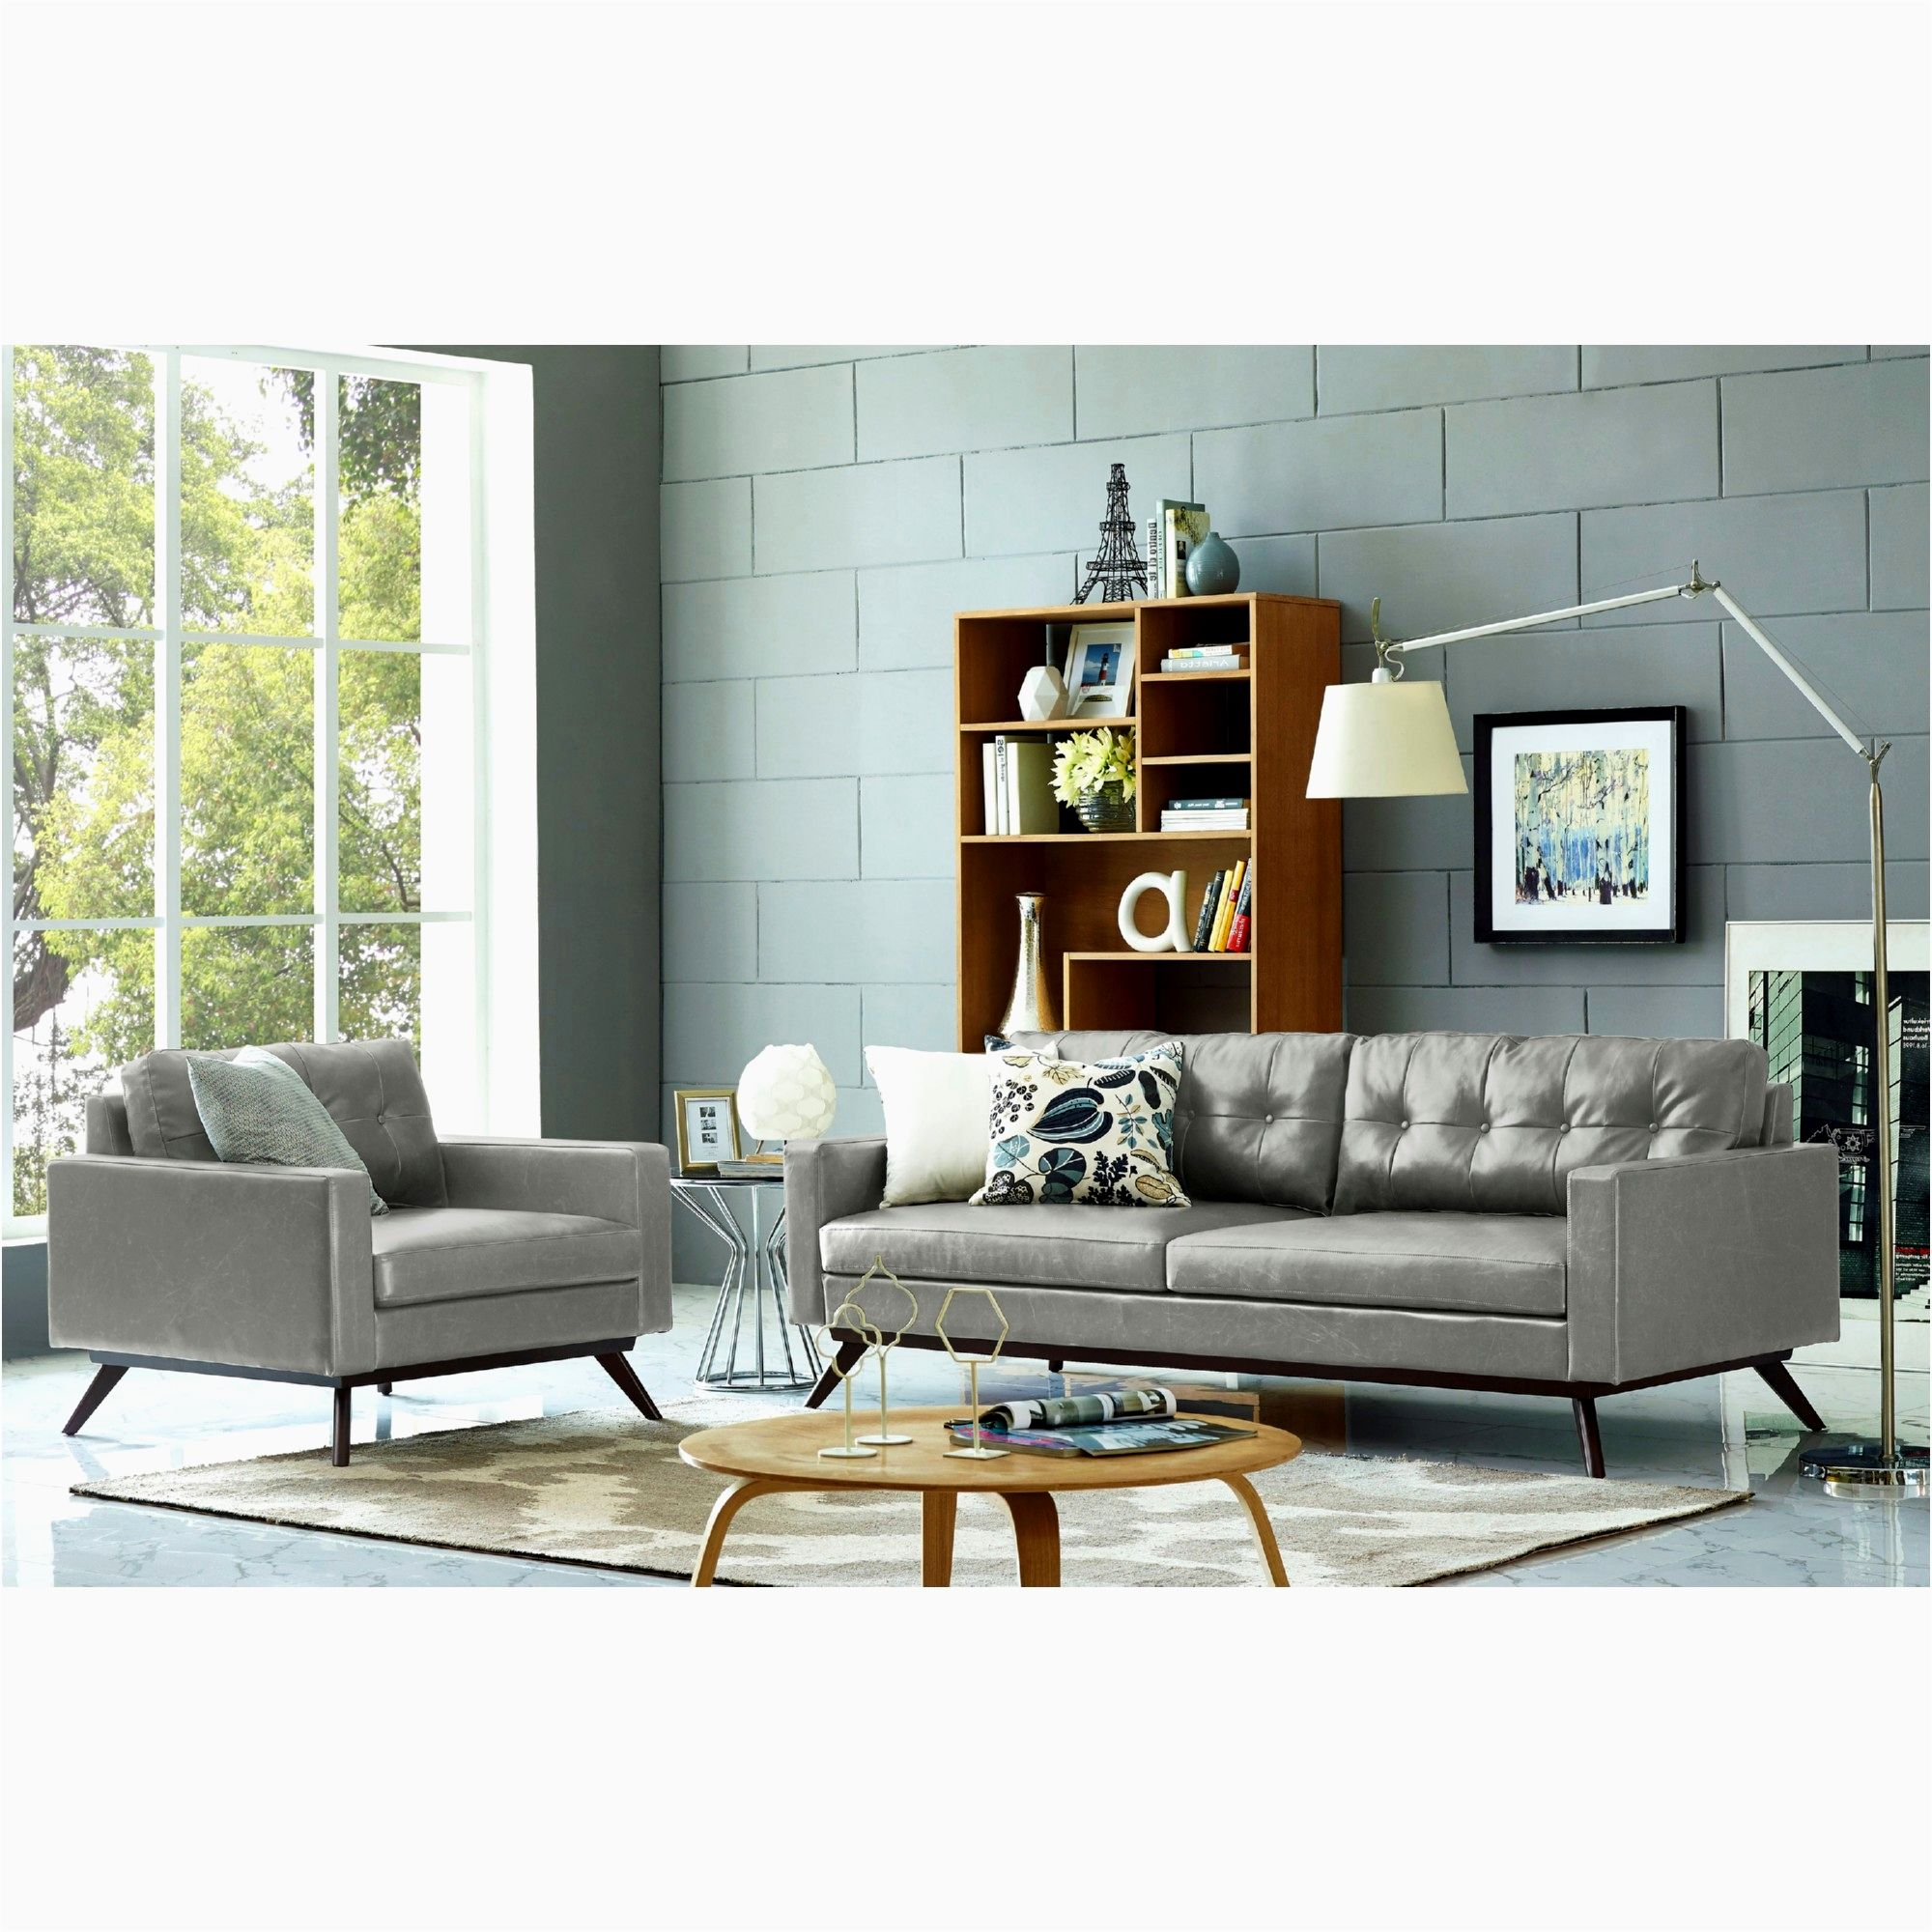 fresh ashley furniture tufted sofa model-Modern ashley Furniture Tufted sofa Ideas